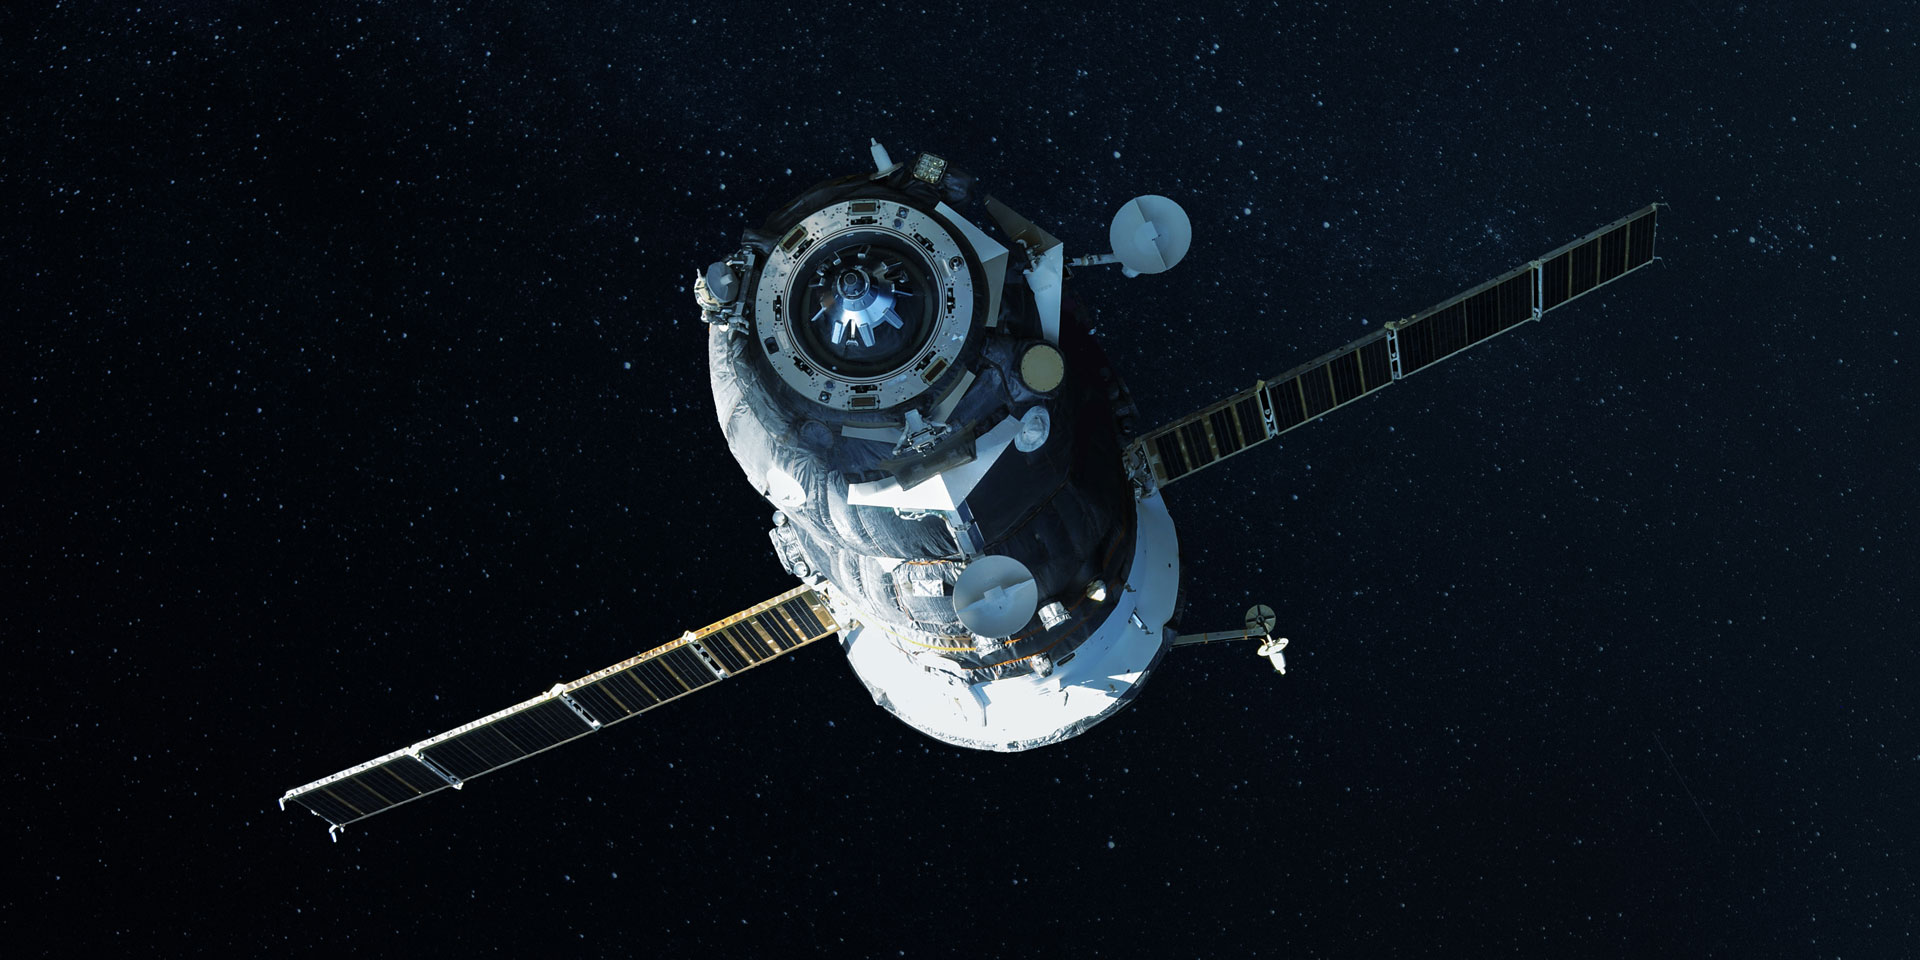 keronite-magnesium-satellite-1